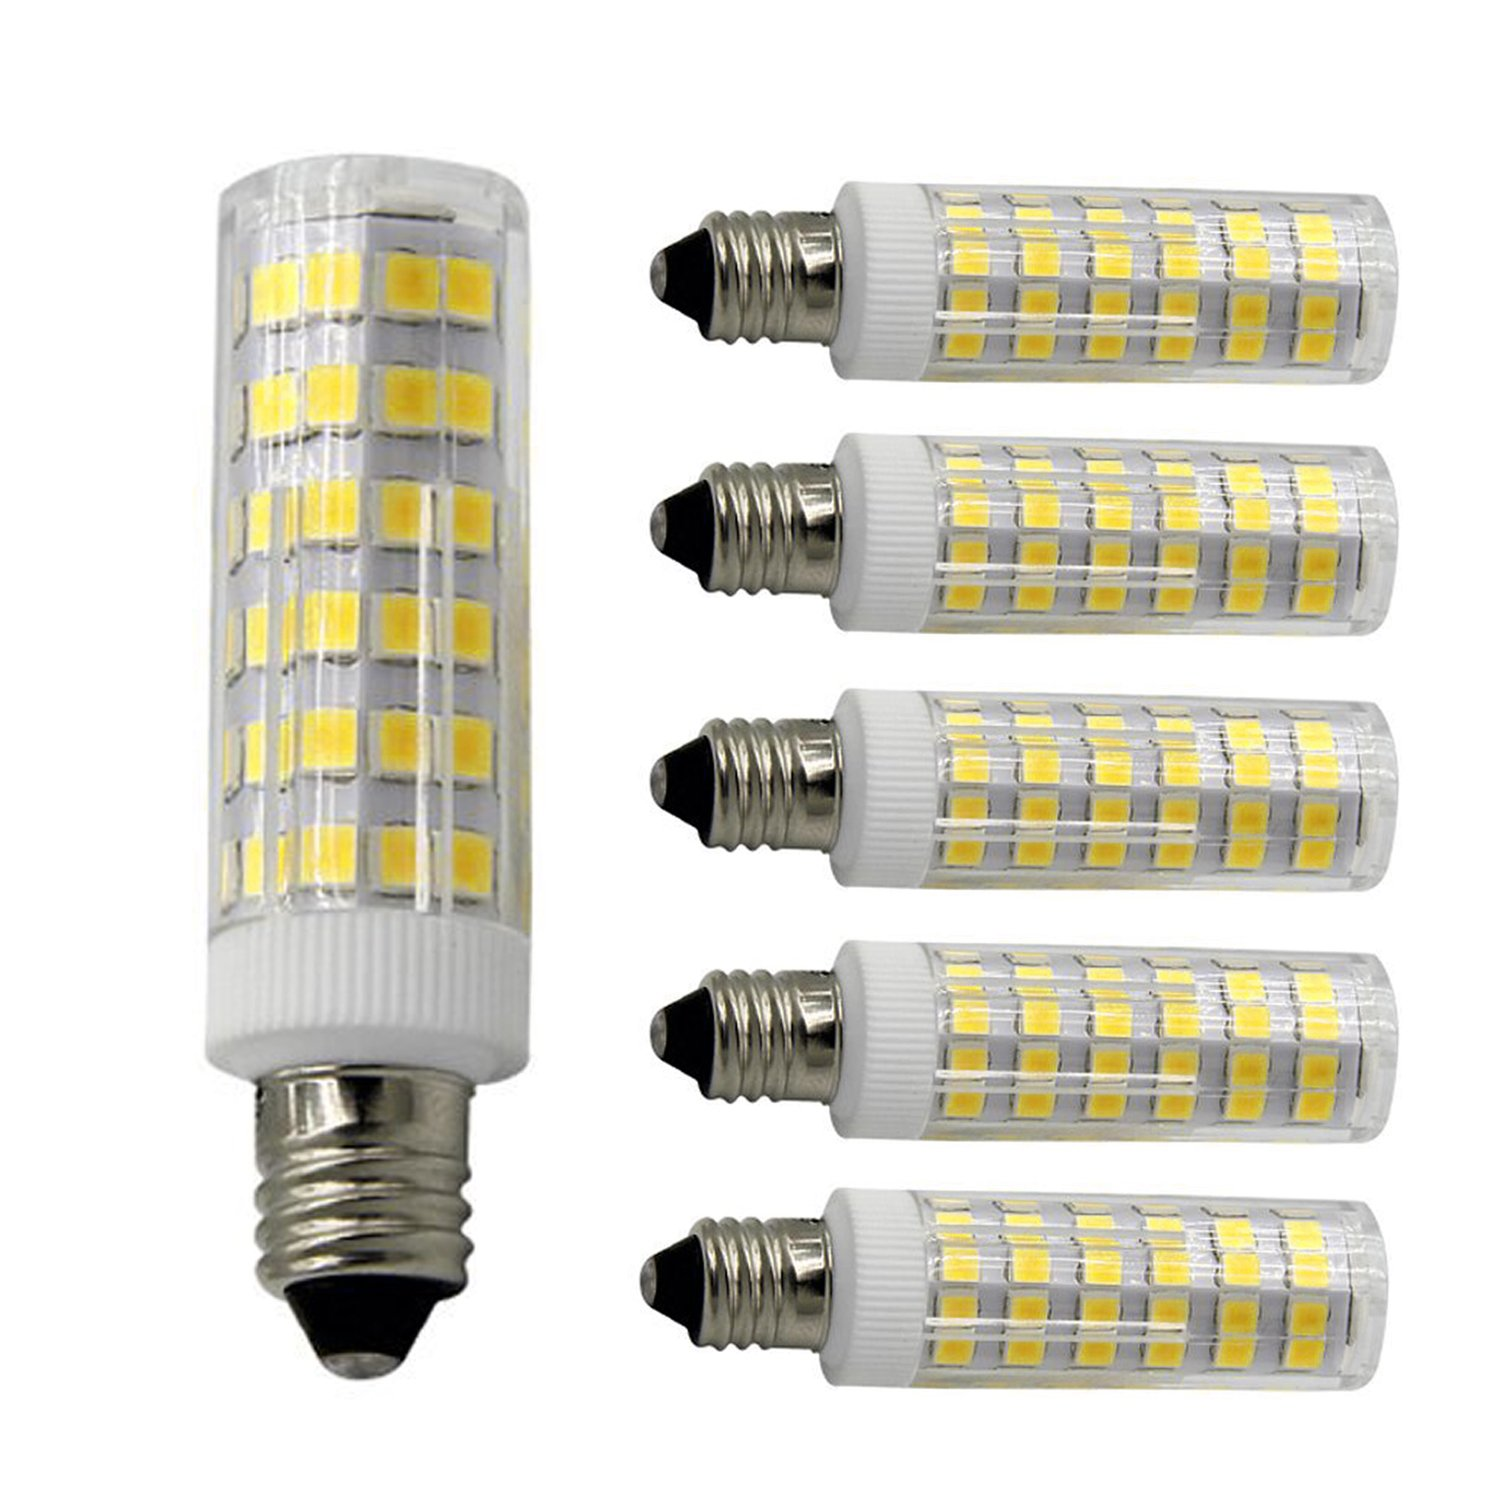 Armynetwork E11 LED Light Bulb 4W to 5W, 40W or 60W, 110v/120v/130v Halogen Bulbs Equivalent,Mini Candelabra JD,Warm White 3000K, Replaces T4/T3 JD Type Clear E11 Light Bulb (5 Pack)